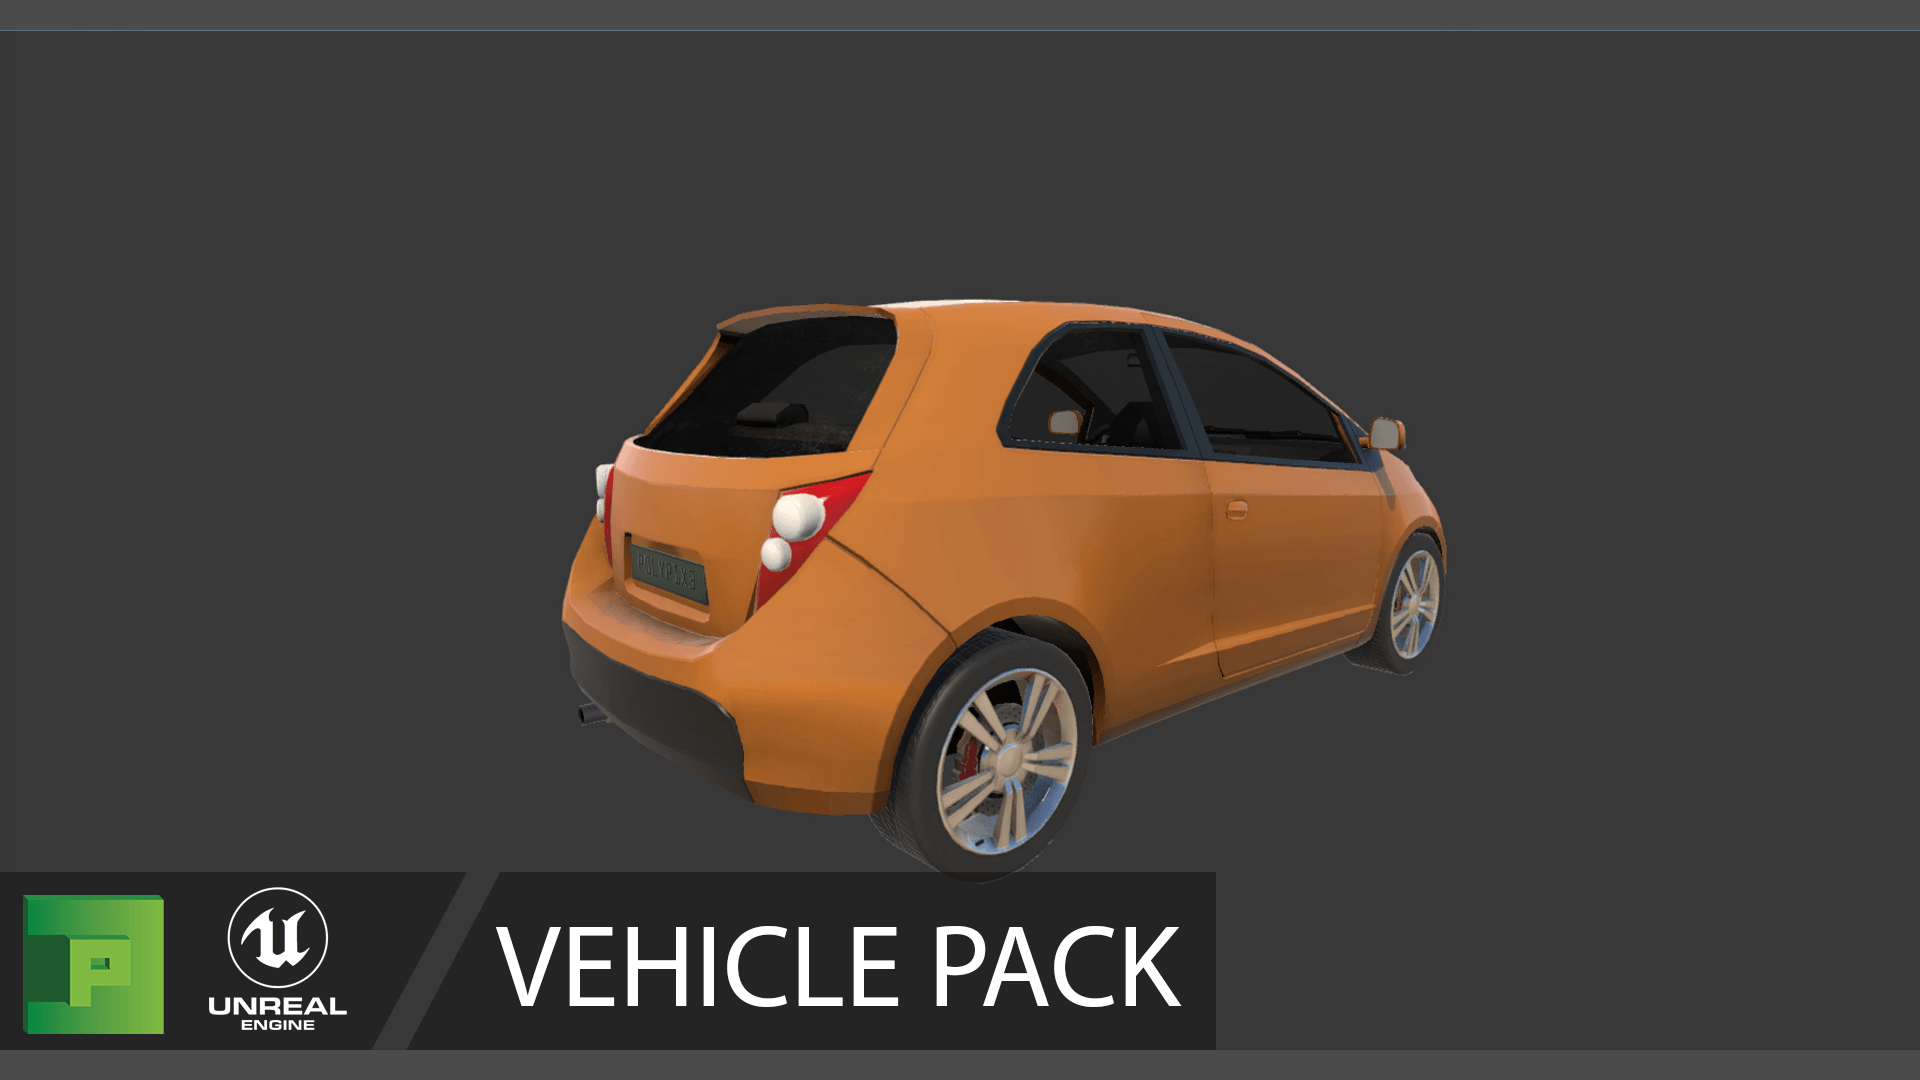 VehiclePack_08